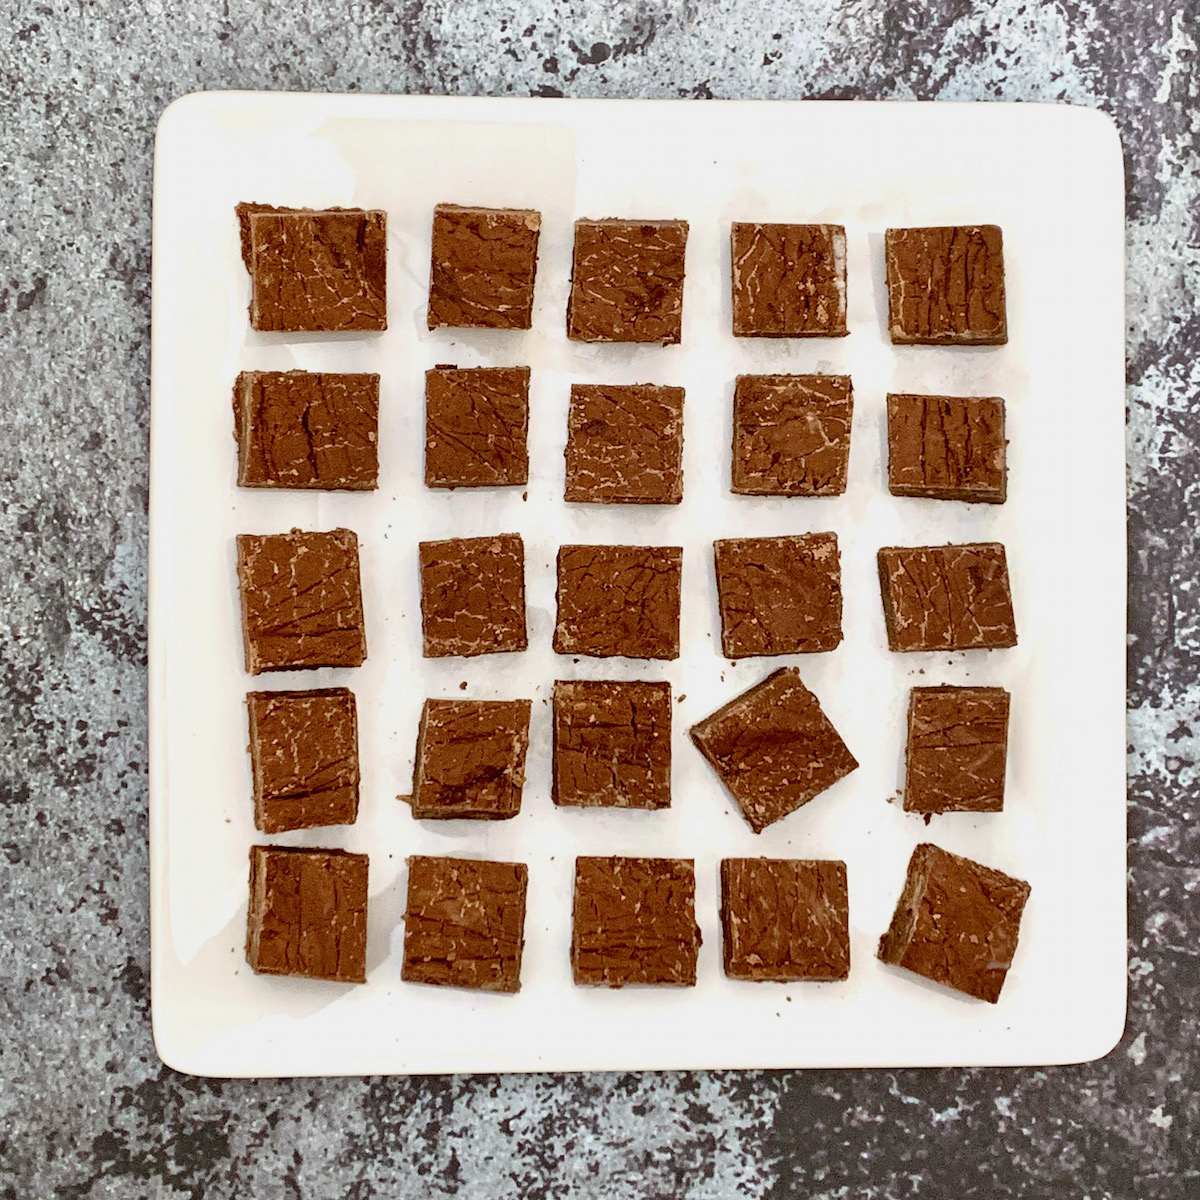 dark chocolate whisky fudge laid out on a square plate overhead